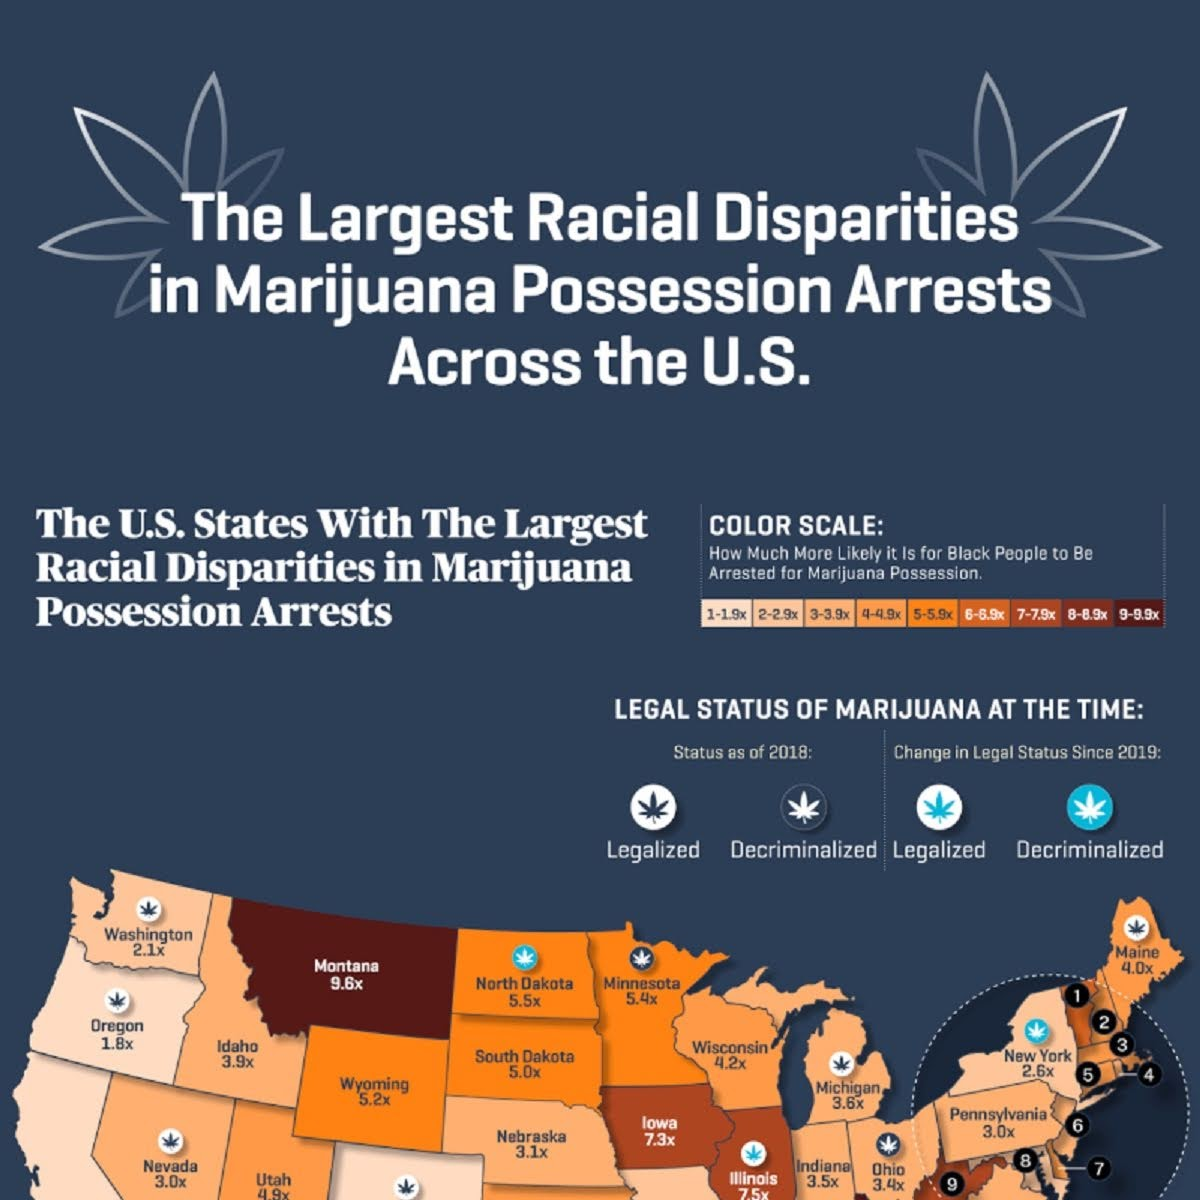 the-largest-racial-disparities-in-marijuana-possession-arrests-across-the-us-infographic